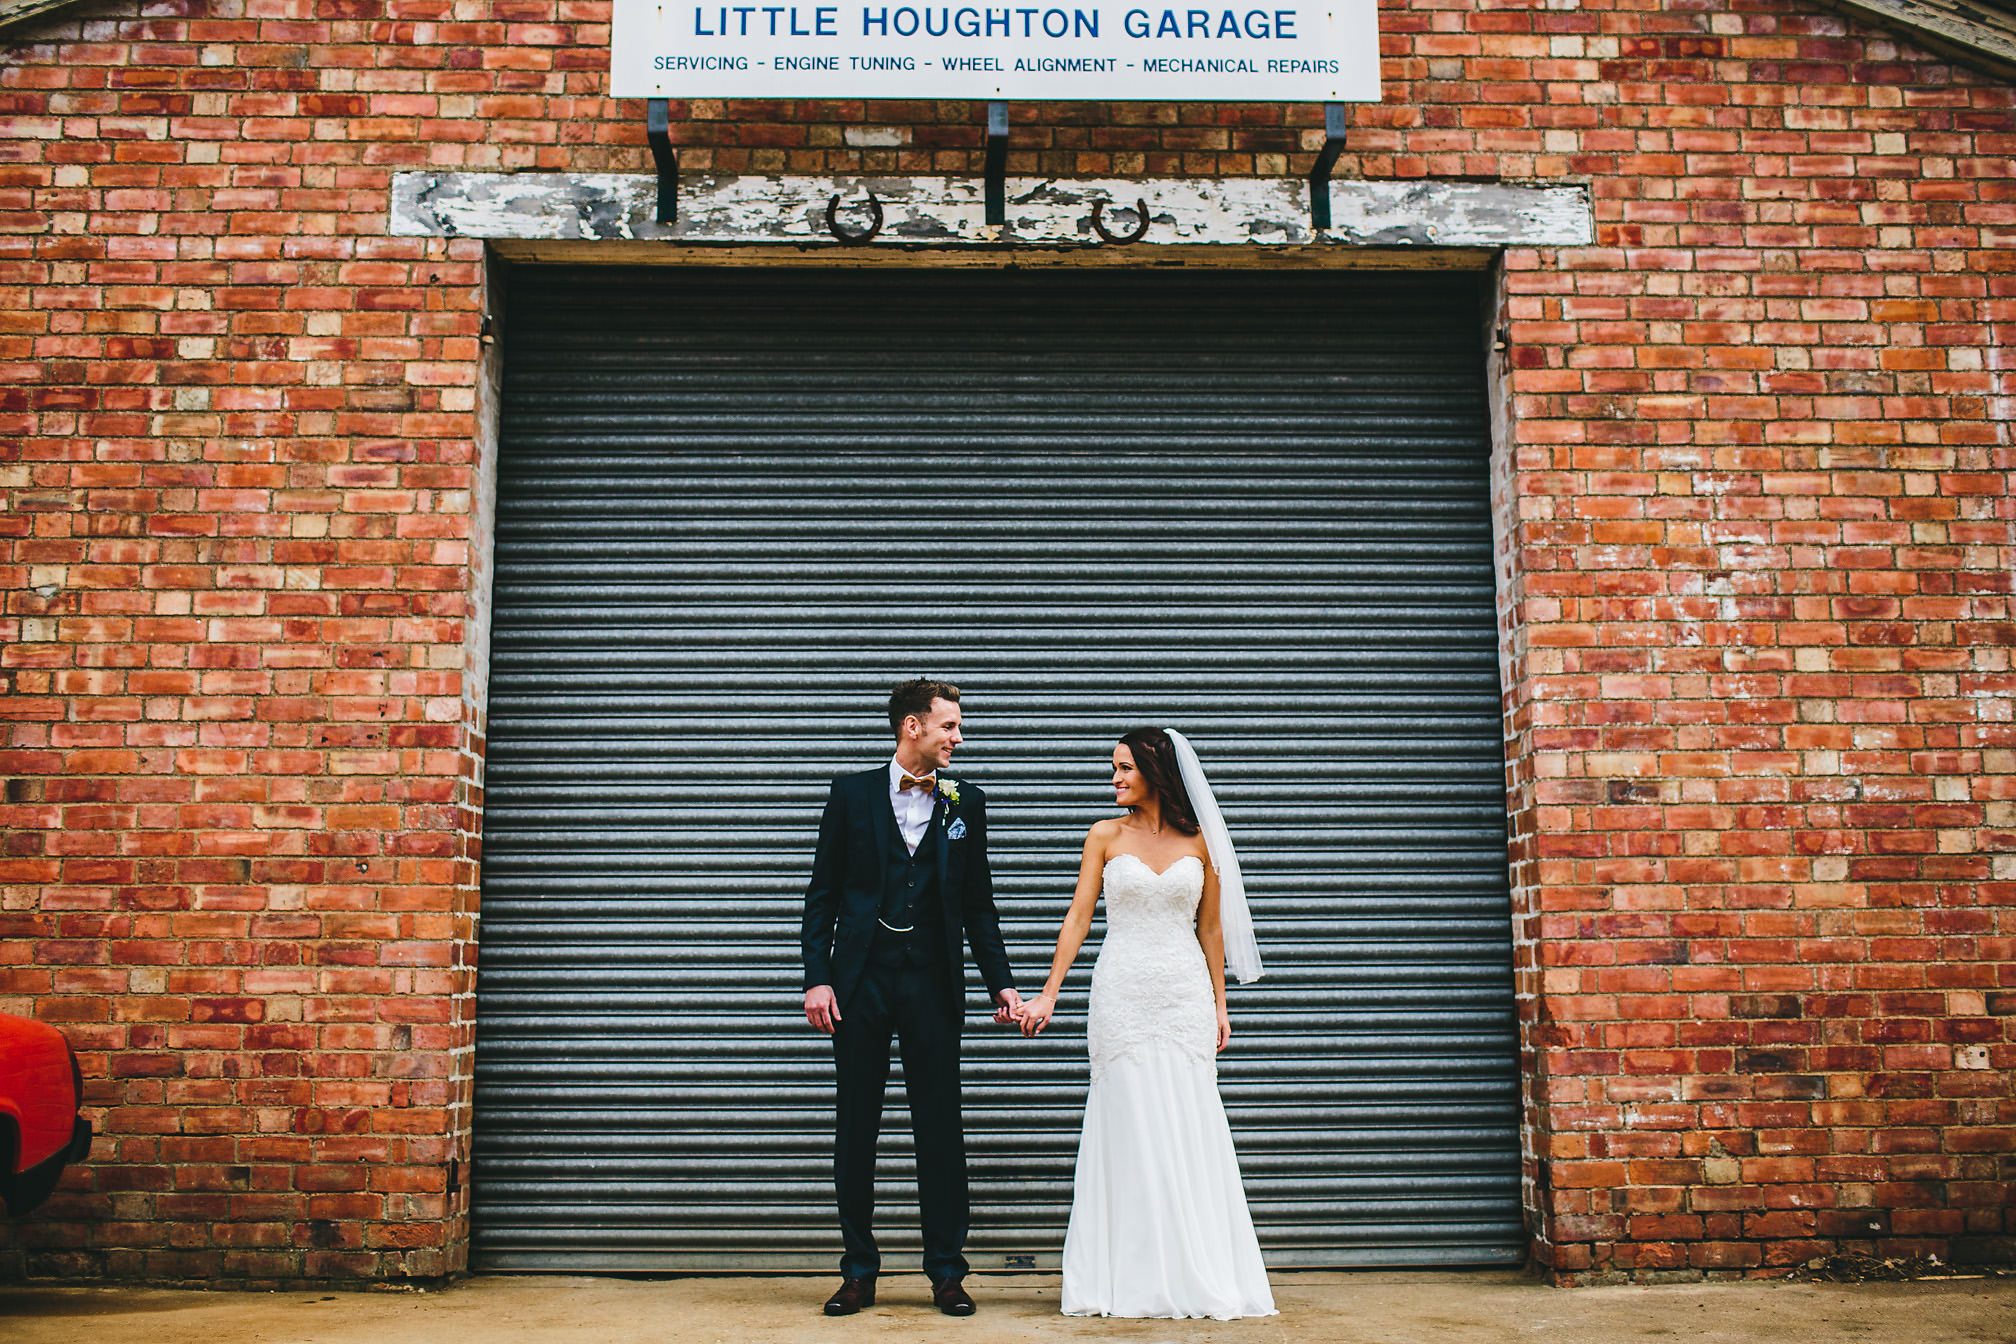 Married Couple at Little Houghton Garage